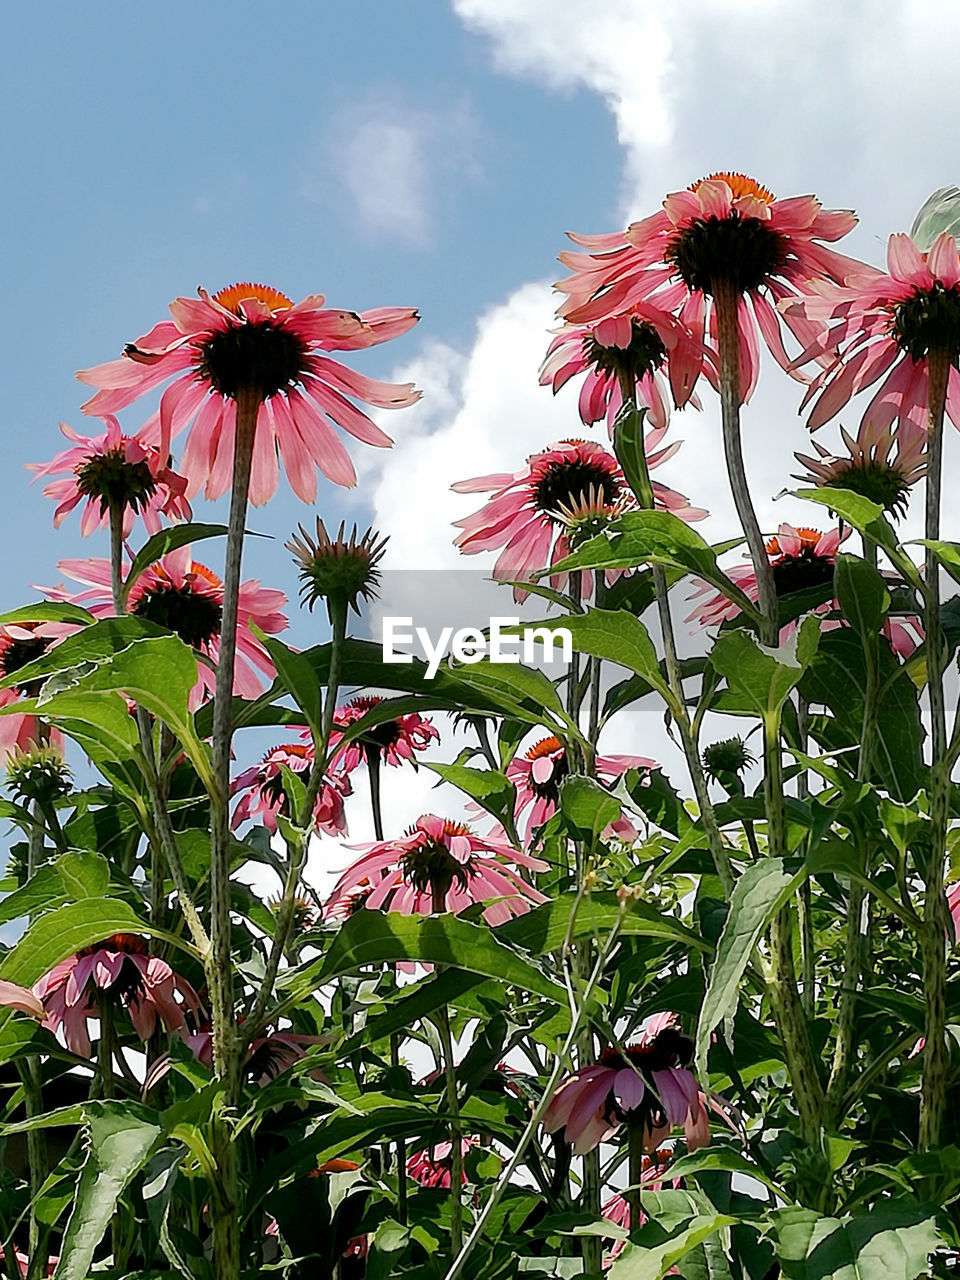 Towards The Light Beauty In Nature Close-up Cloud - Sky Day Flower Flower Head Flowering Plant Fragility Freshness Growth Low Angle View Nature No People Outdoors Petal Pink Color Summer